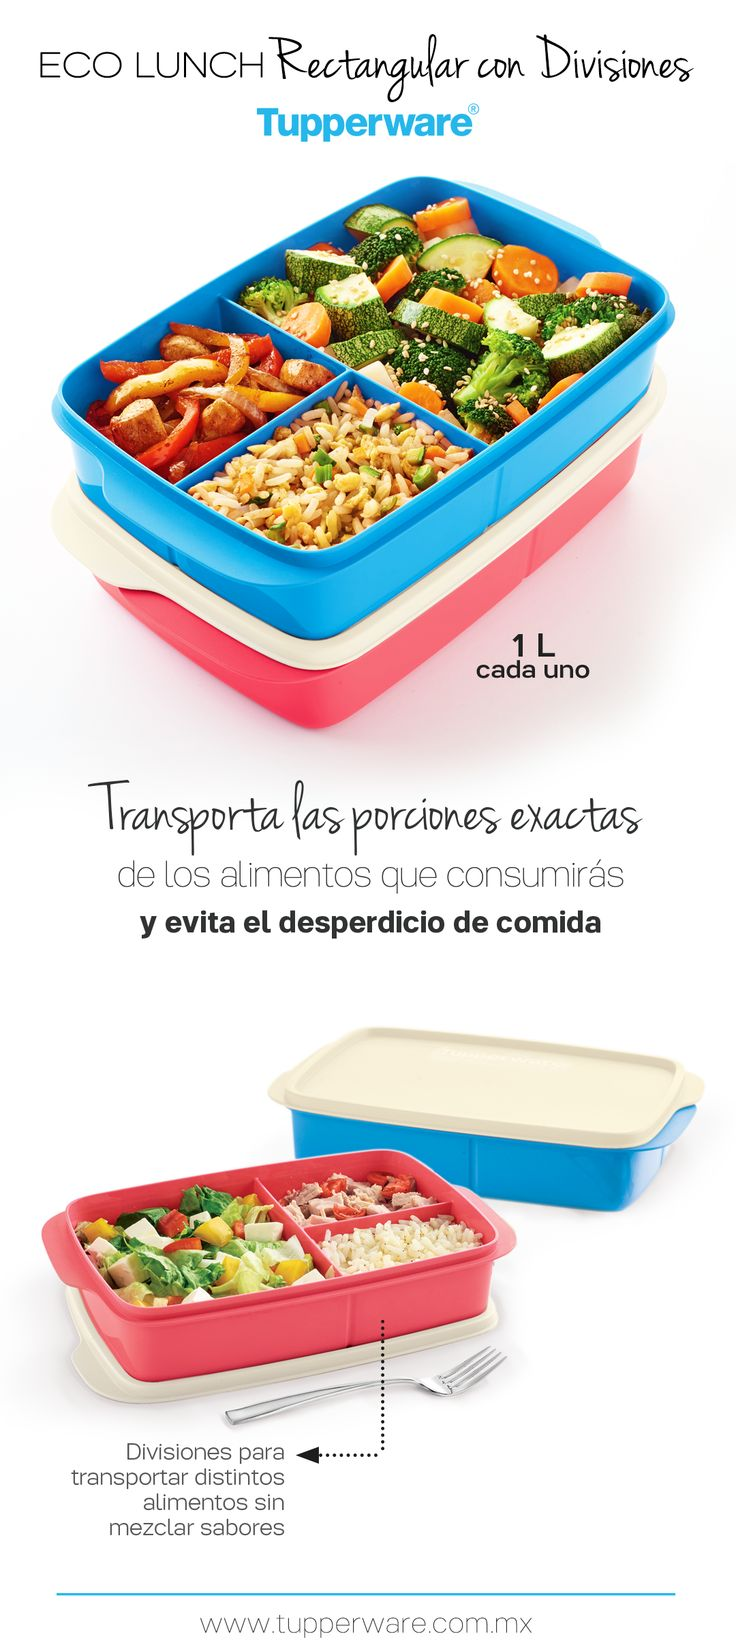 Eco Lunch #ProductoTupperware #Tupperware